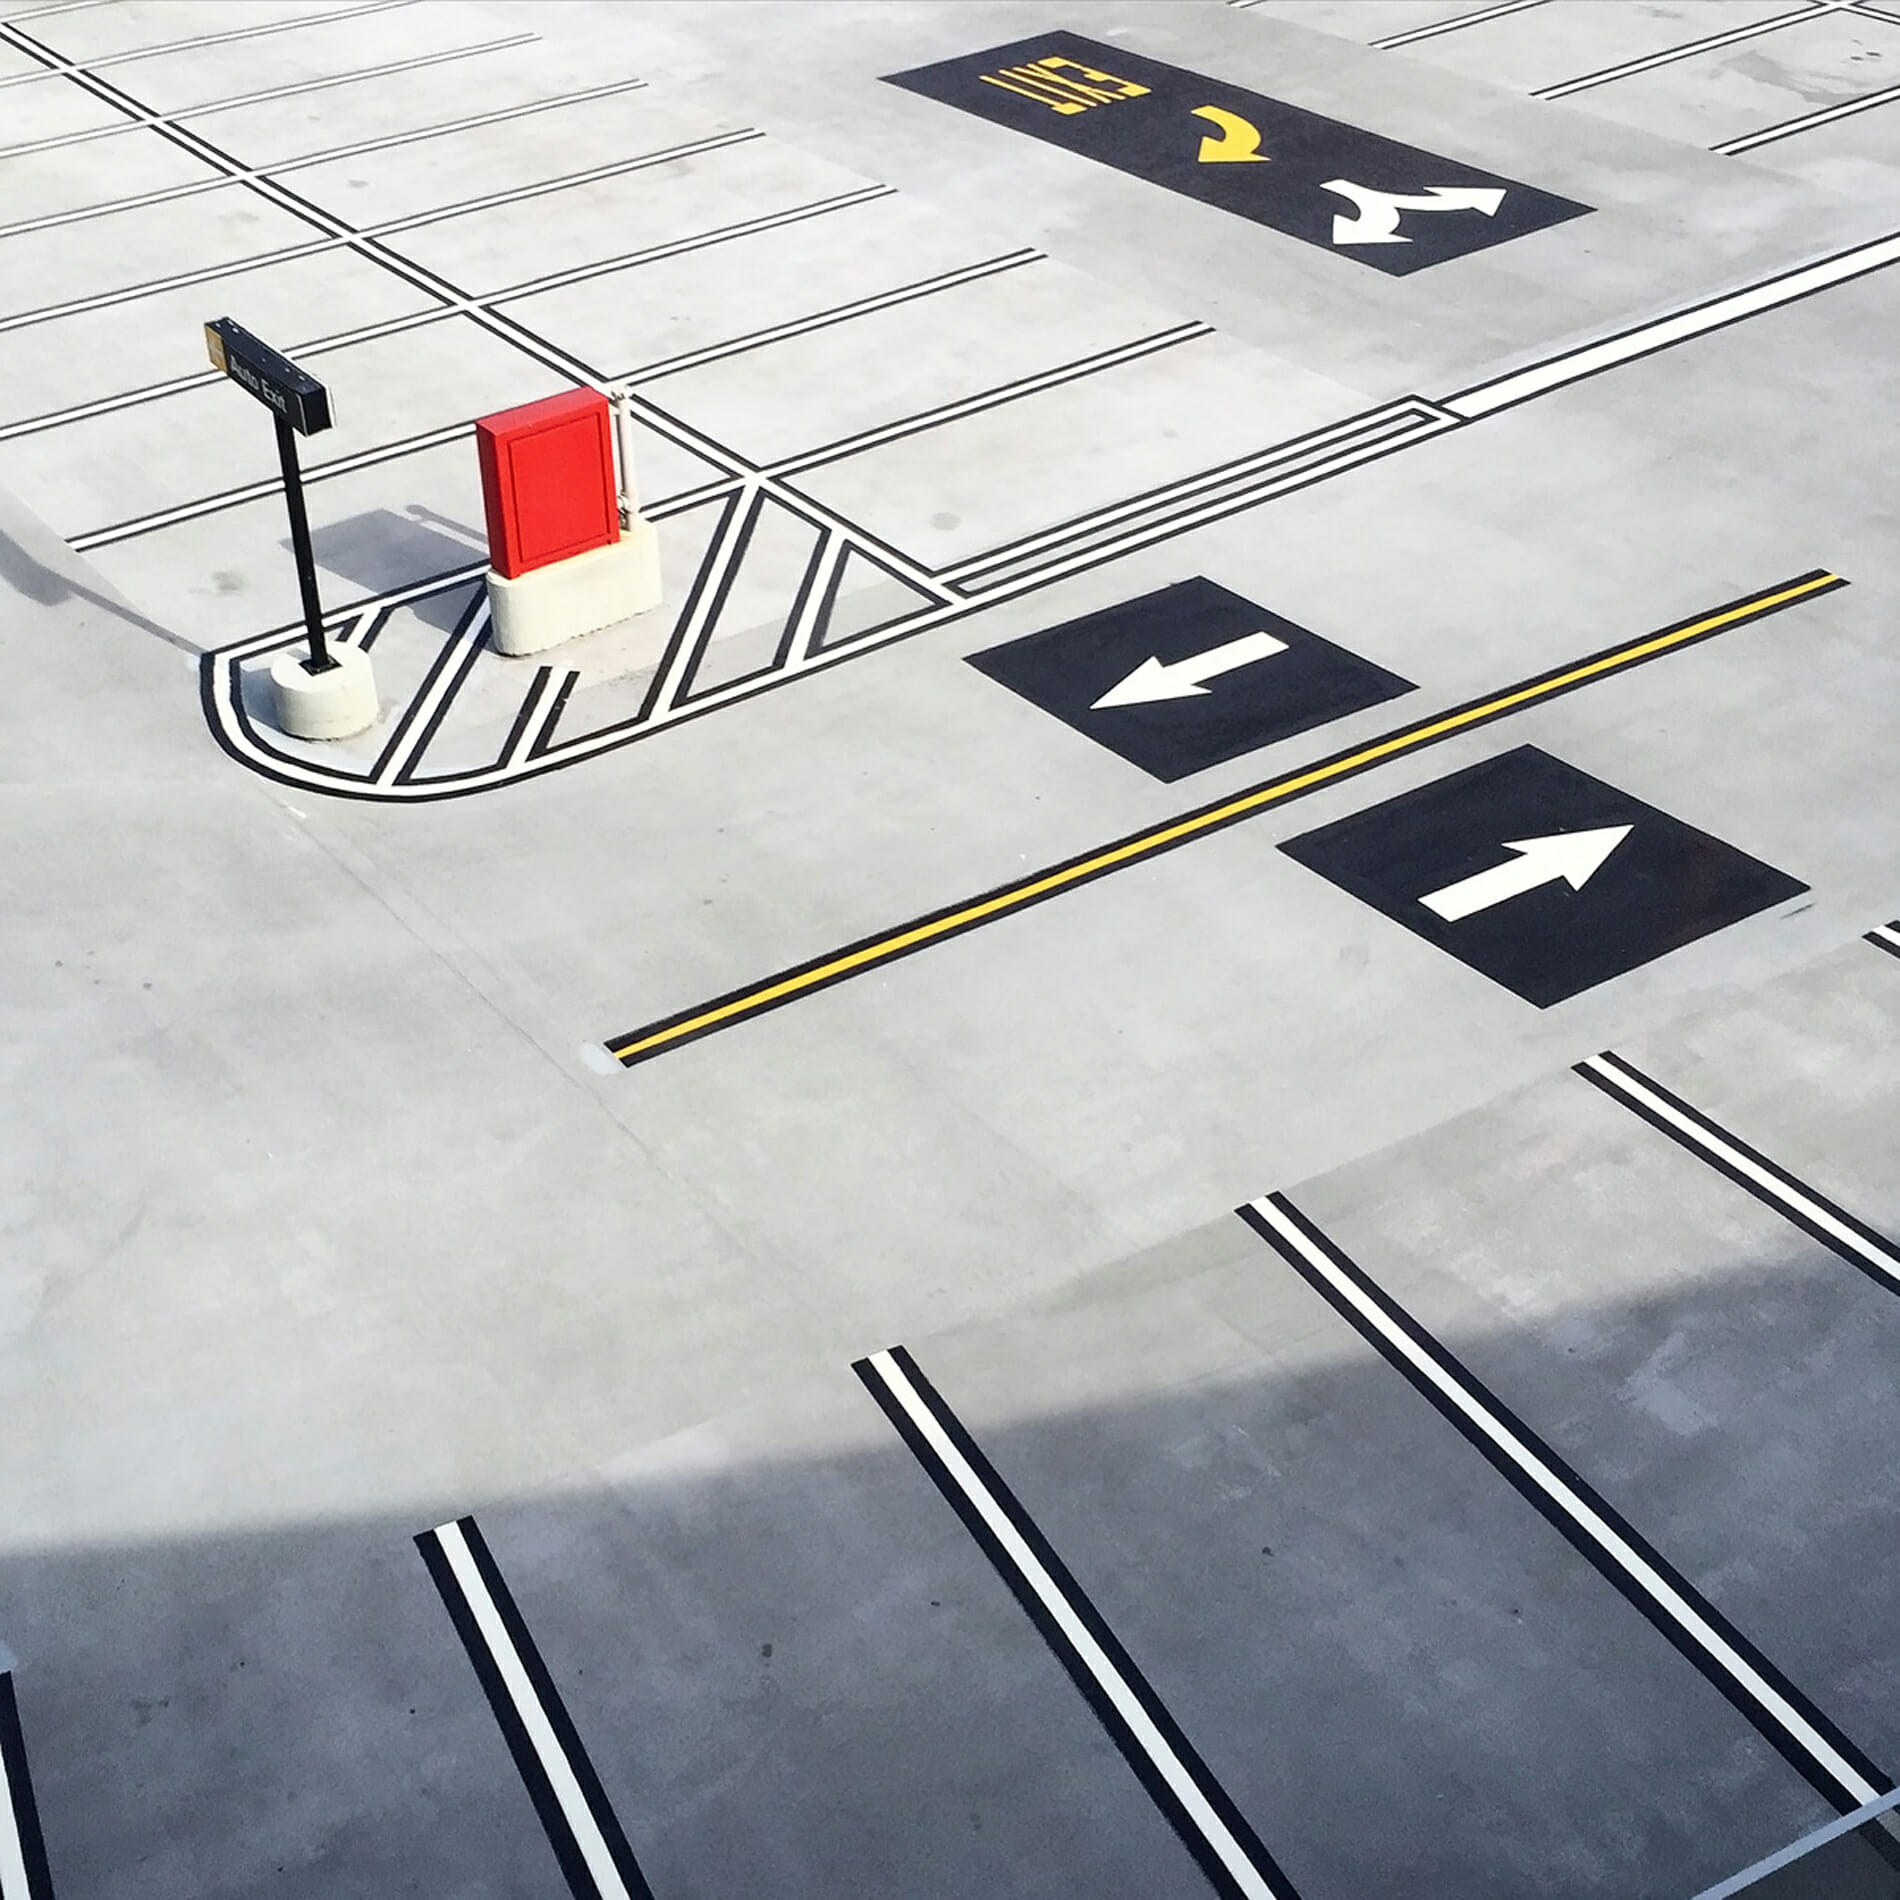 Arrows in airport parking lot